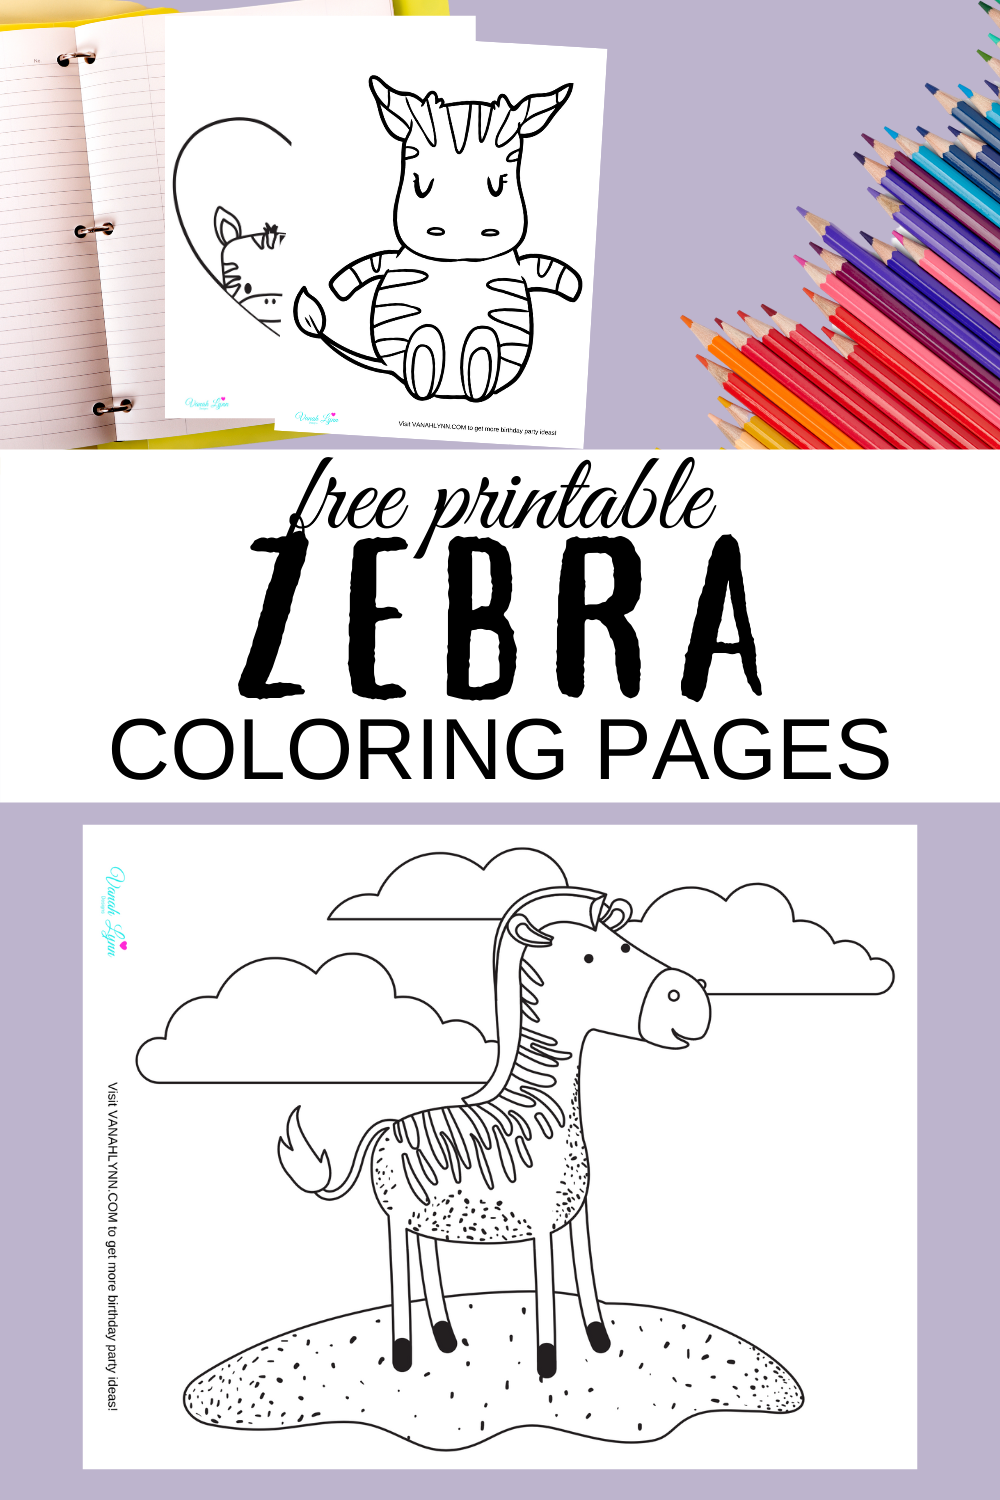 zebra coloring pages for a zebra themed birthday party